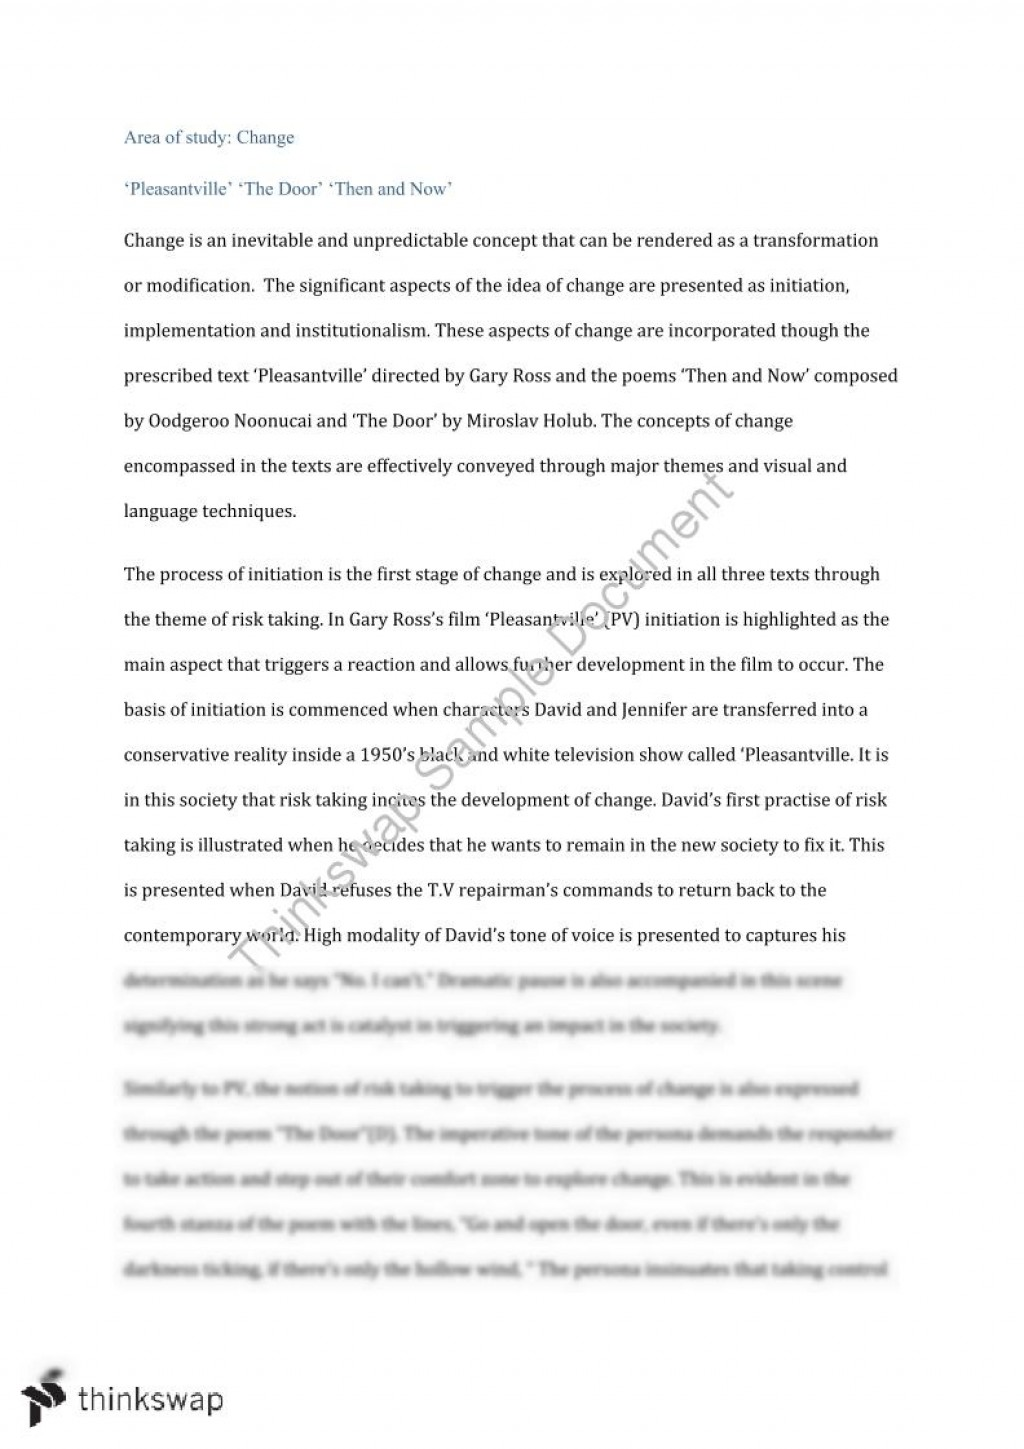 003 Change Essay 58348 Aoschangeessay Docx Fadded31 Awesome Topics The World Contest Titles Large